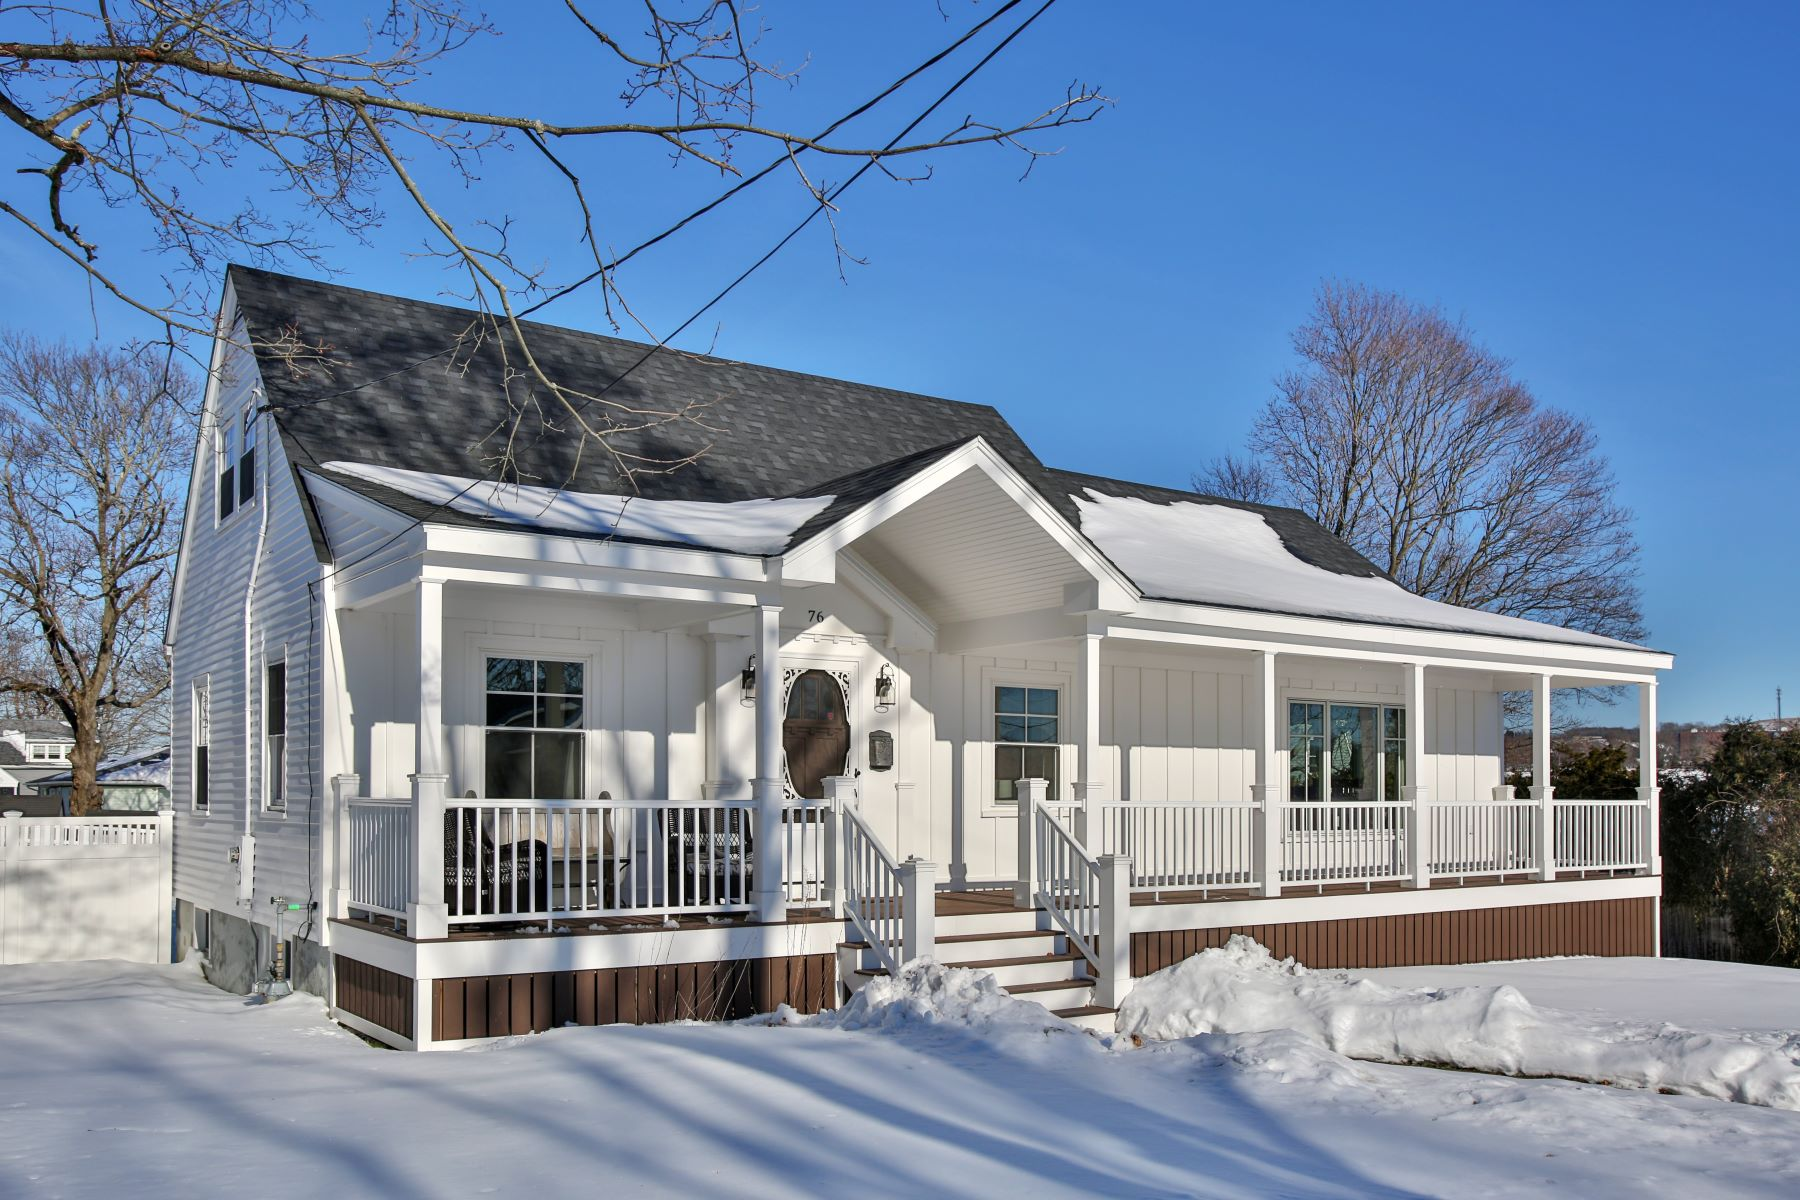 Single Family Home for Sale at 76 Gay St, Somerset, MA 76 Gay St Somerset, Massachusetts 02726 United States